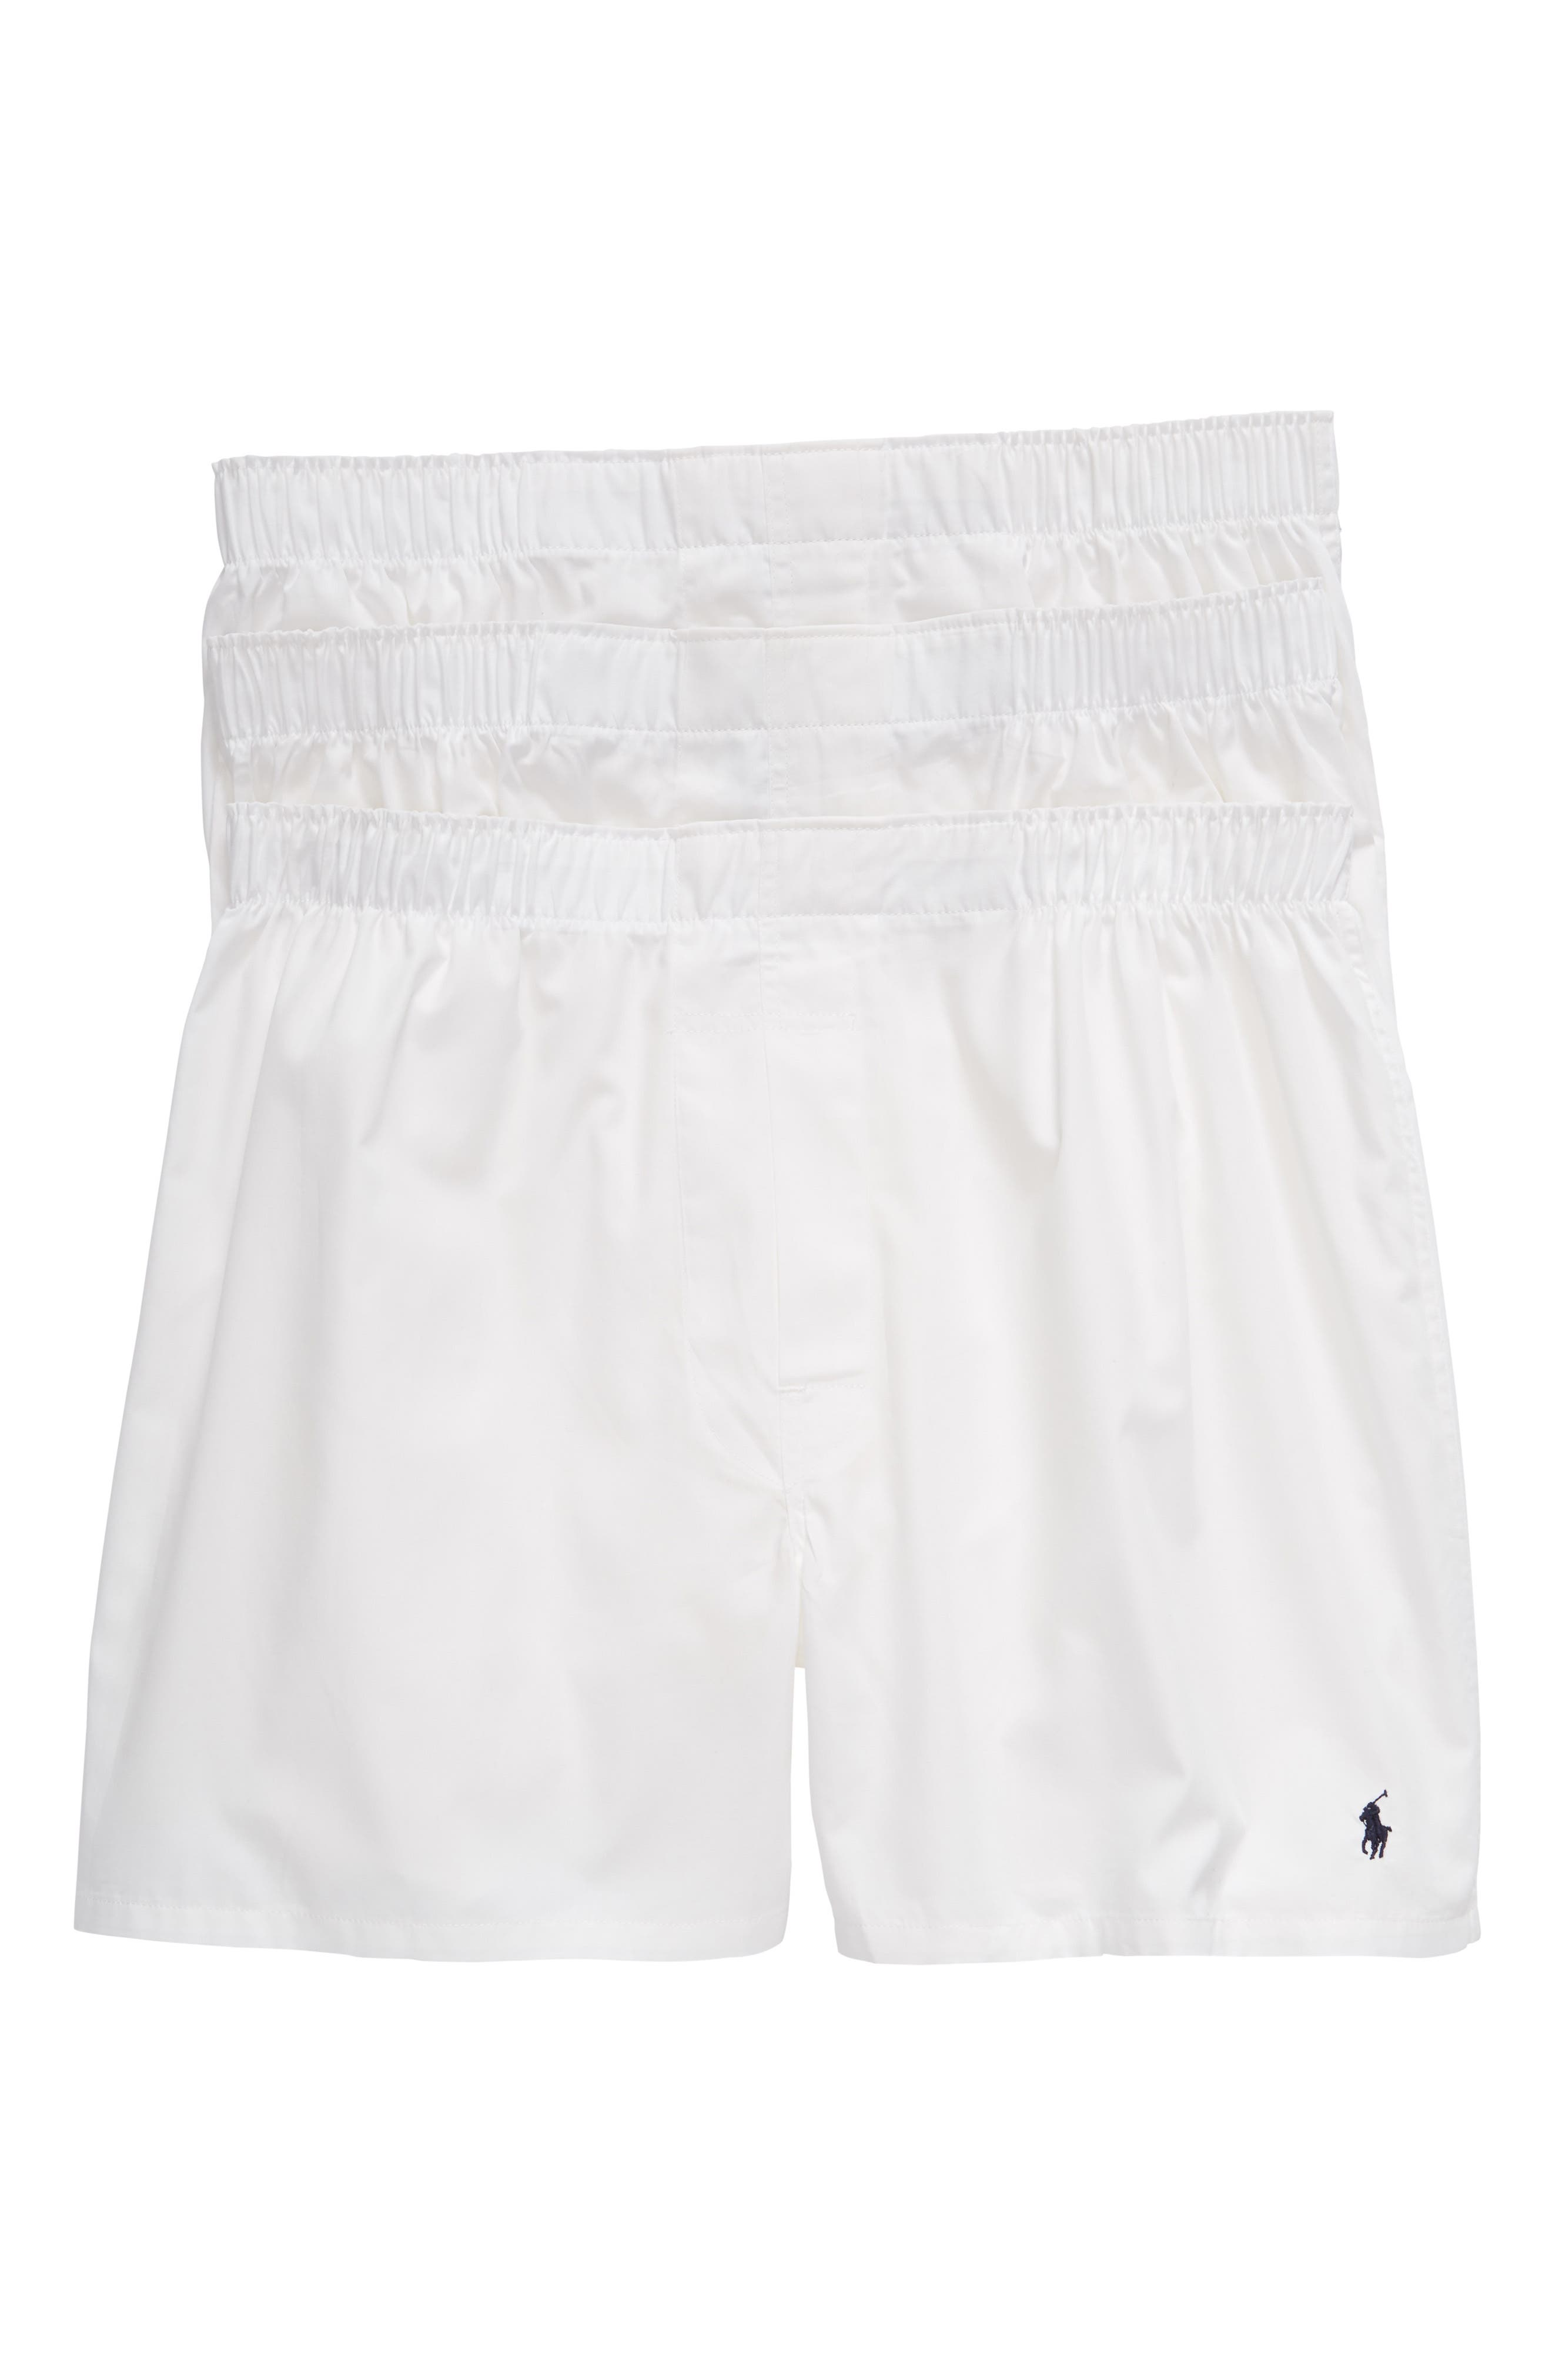 3-Pack Boxers,                         Main,                         color, WHITE